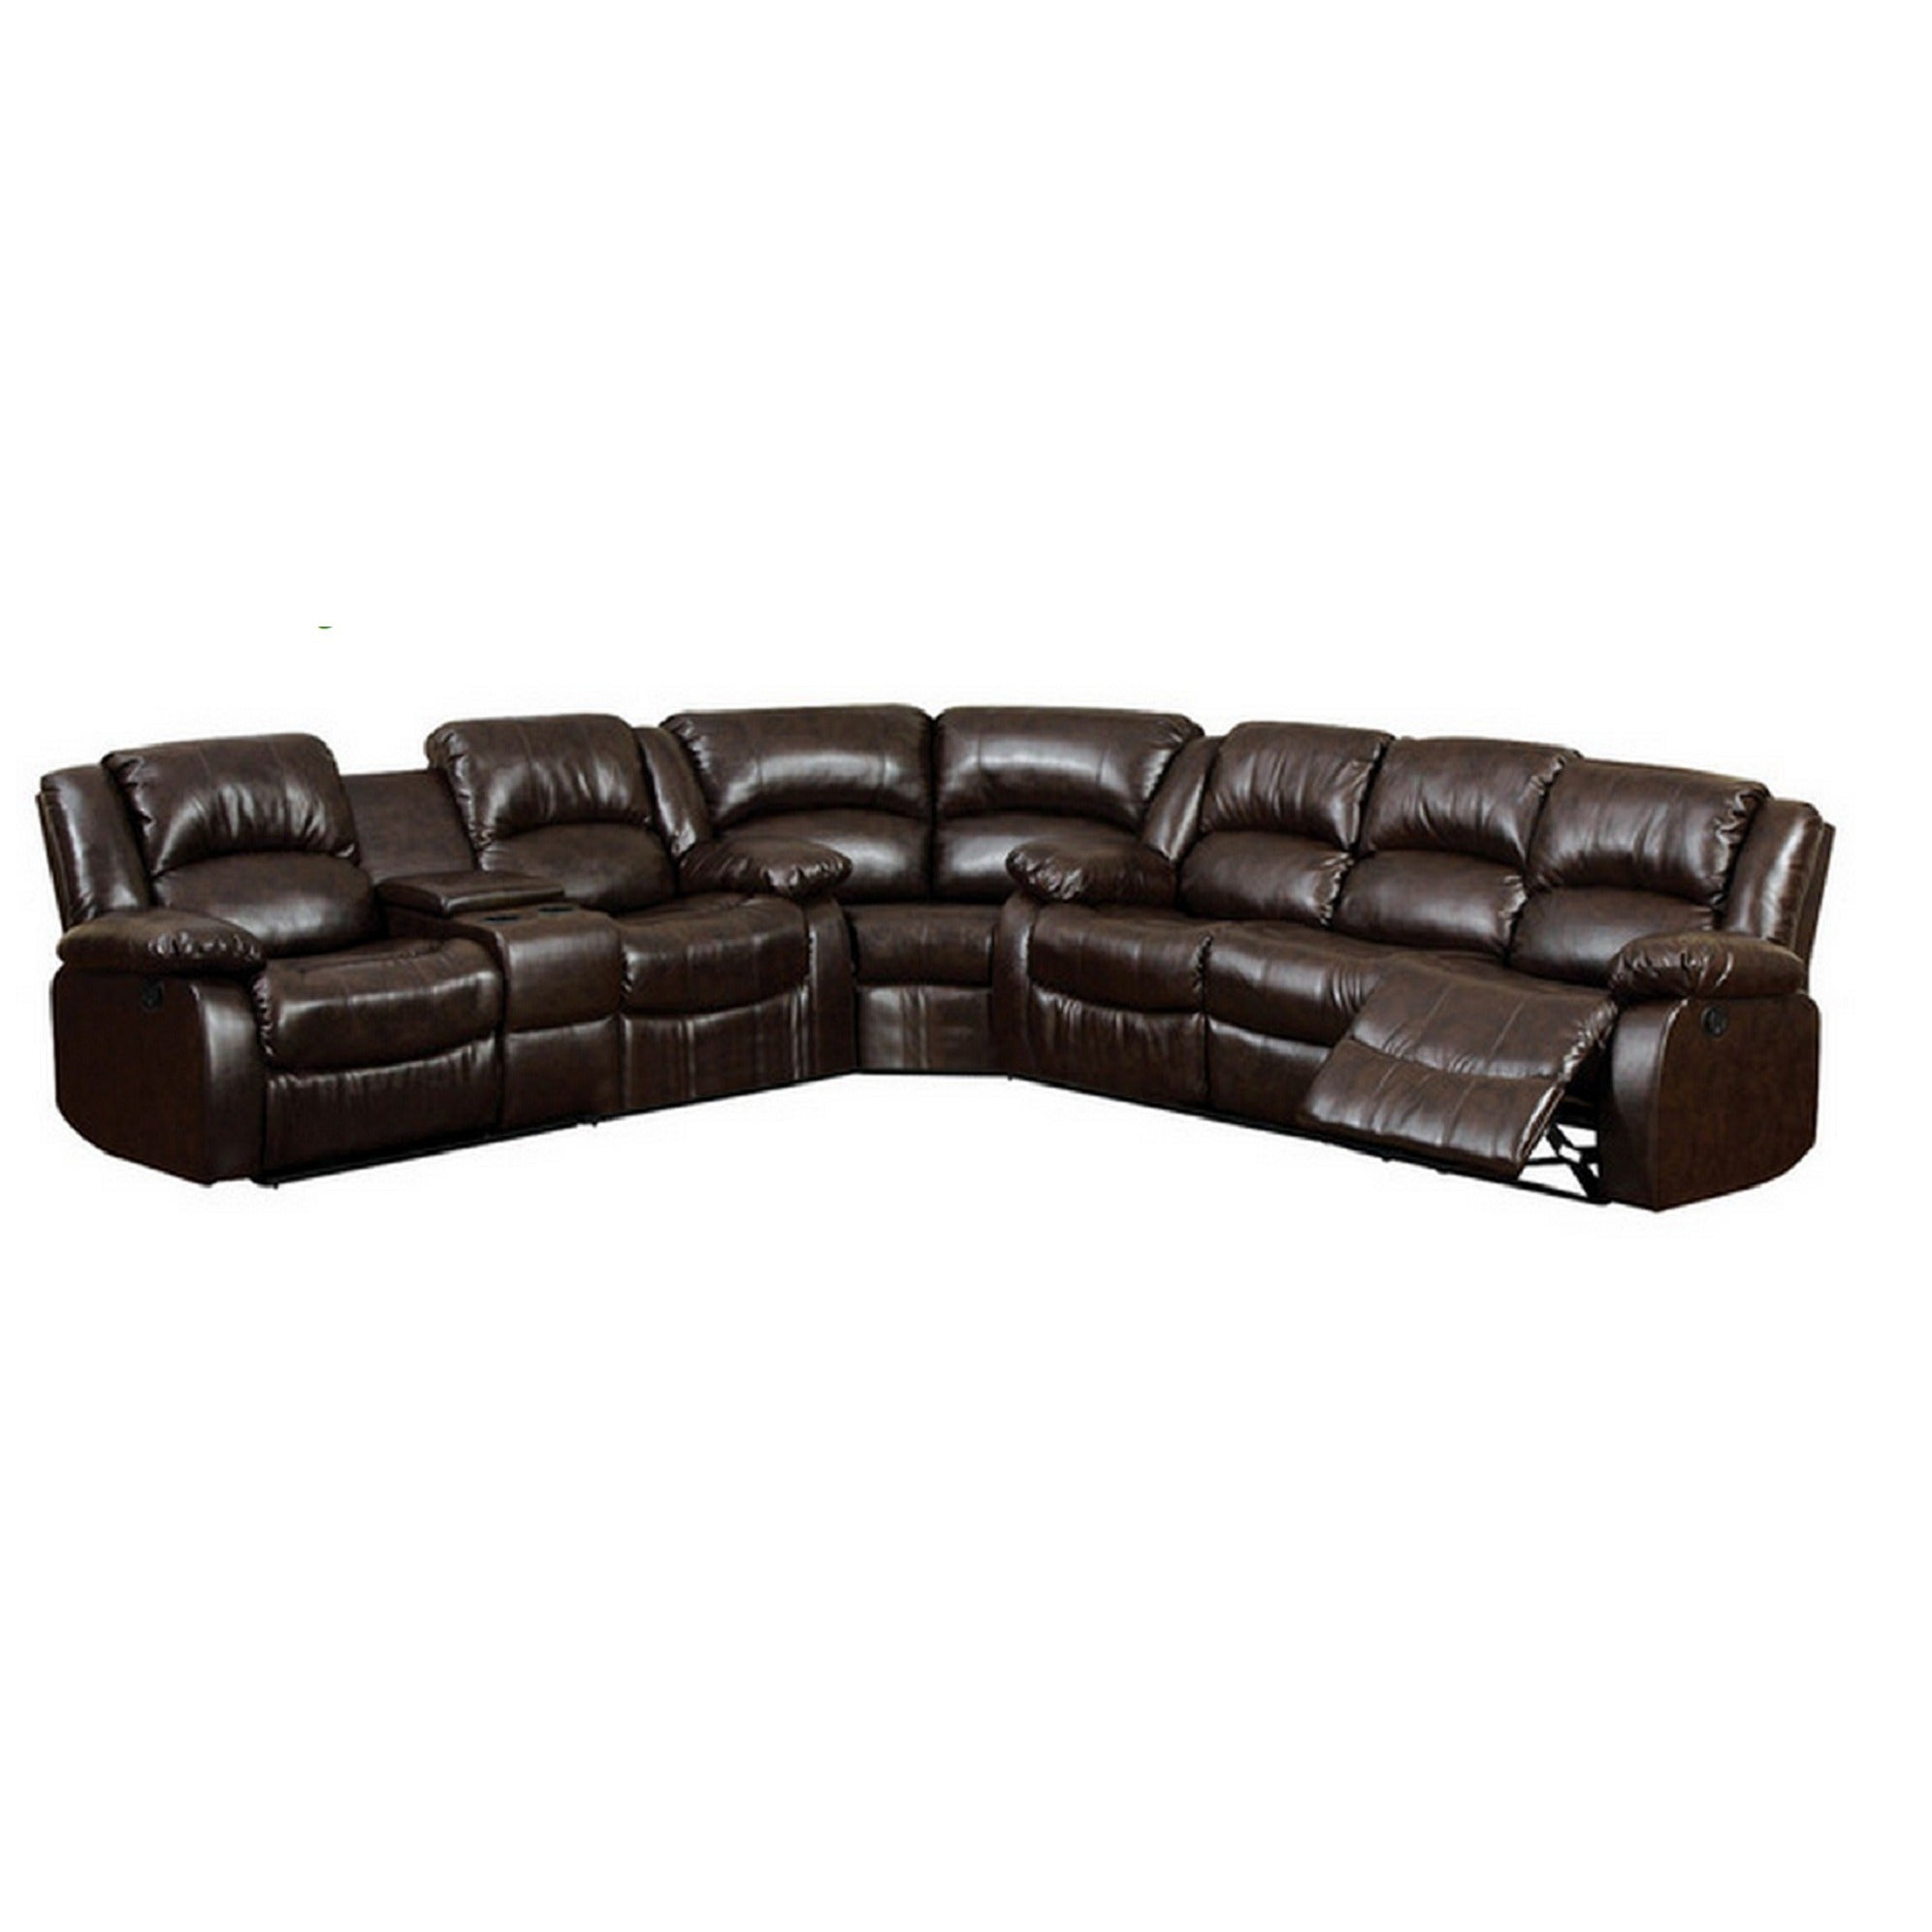 ergebnis tag couch amazing small grobania galerie sofas rustic sectional elegant u of top simmons esszimmer